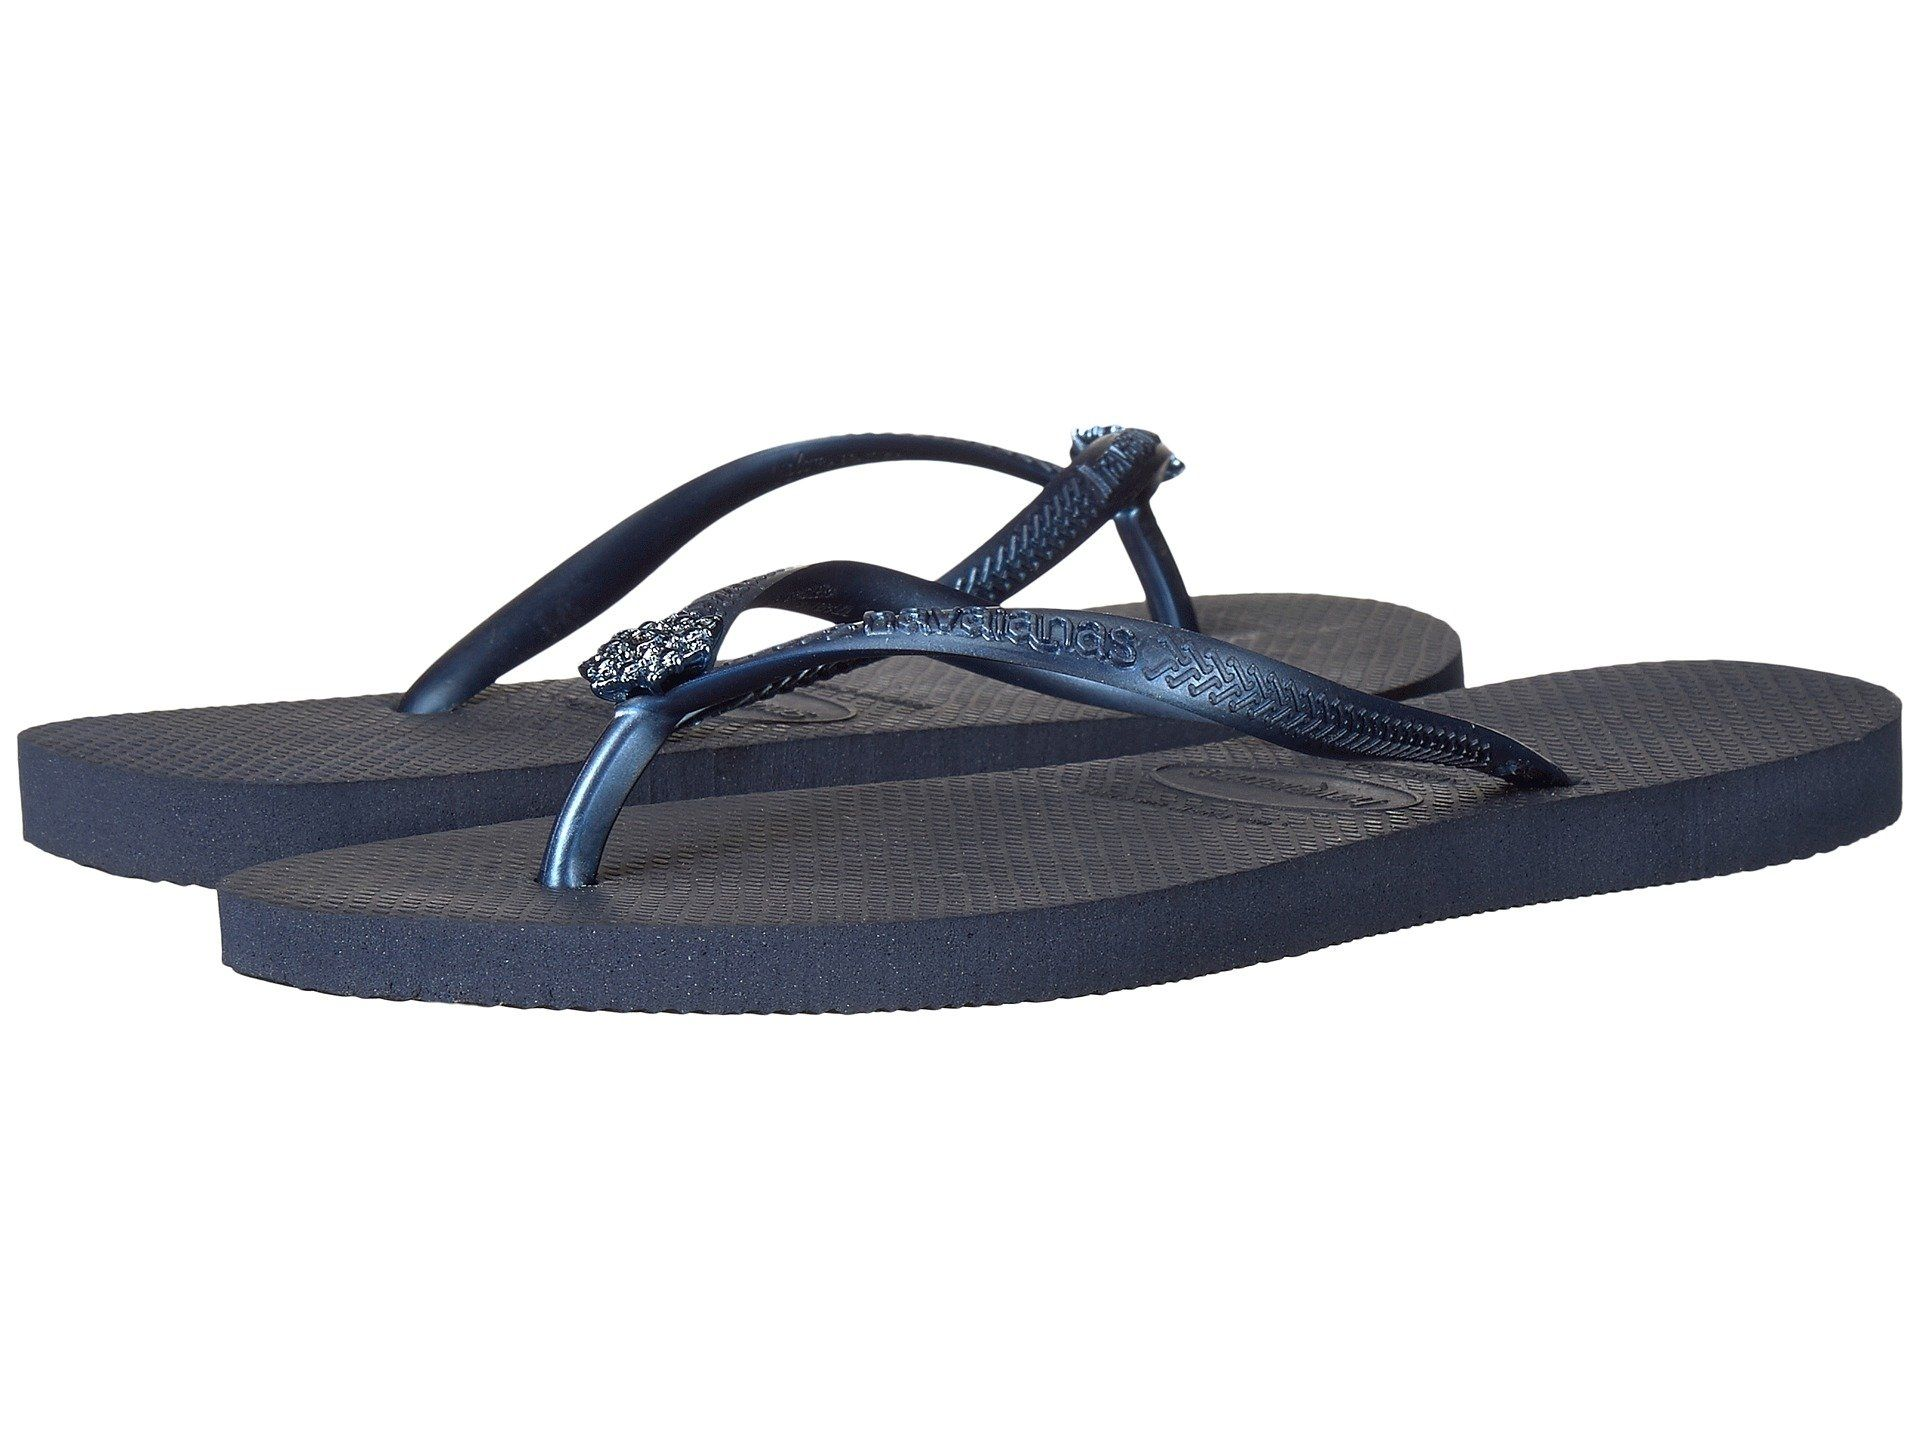 814d113f9 Buy Havaianas Havaianas Slim Crystal Poem Flip Flops in Egypt